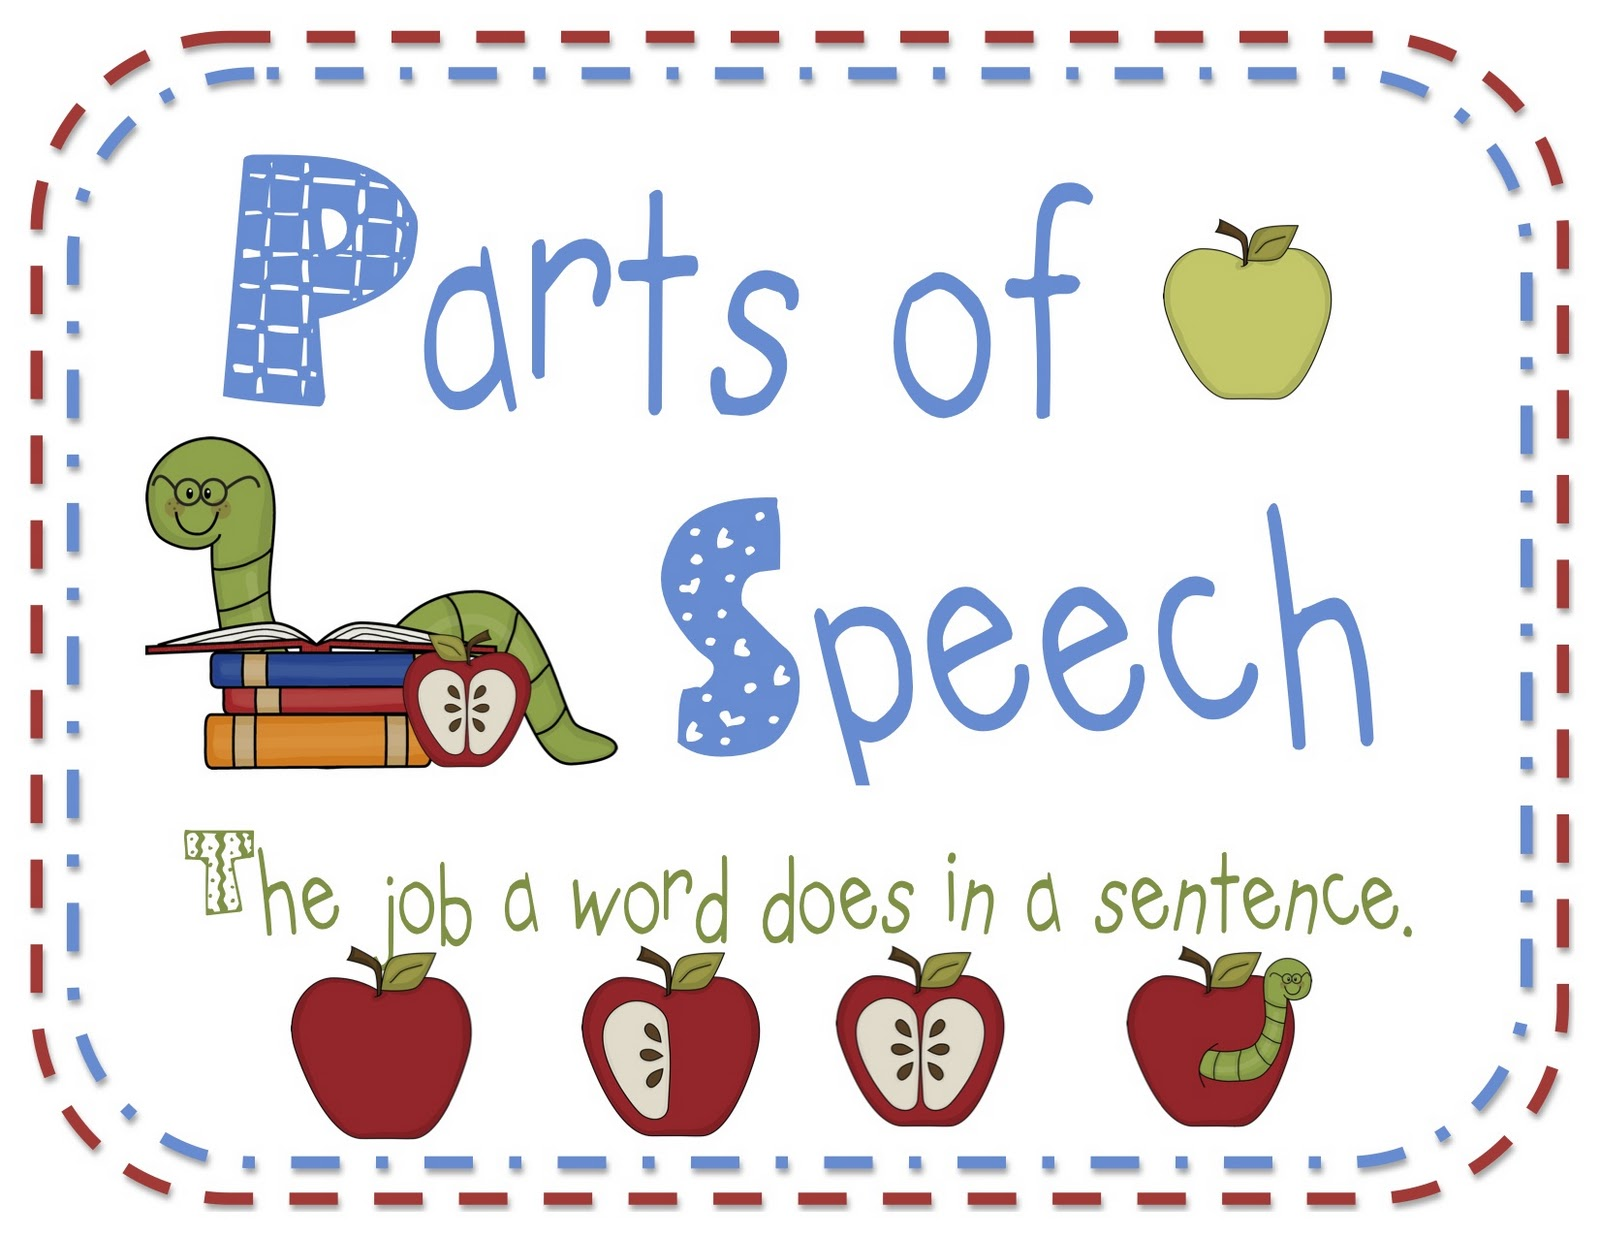 Quotes about Parts of speech (38 quotes).